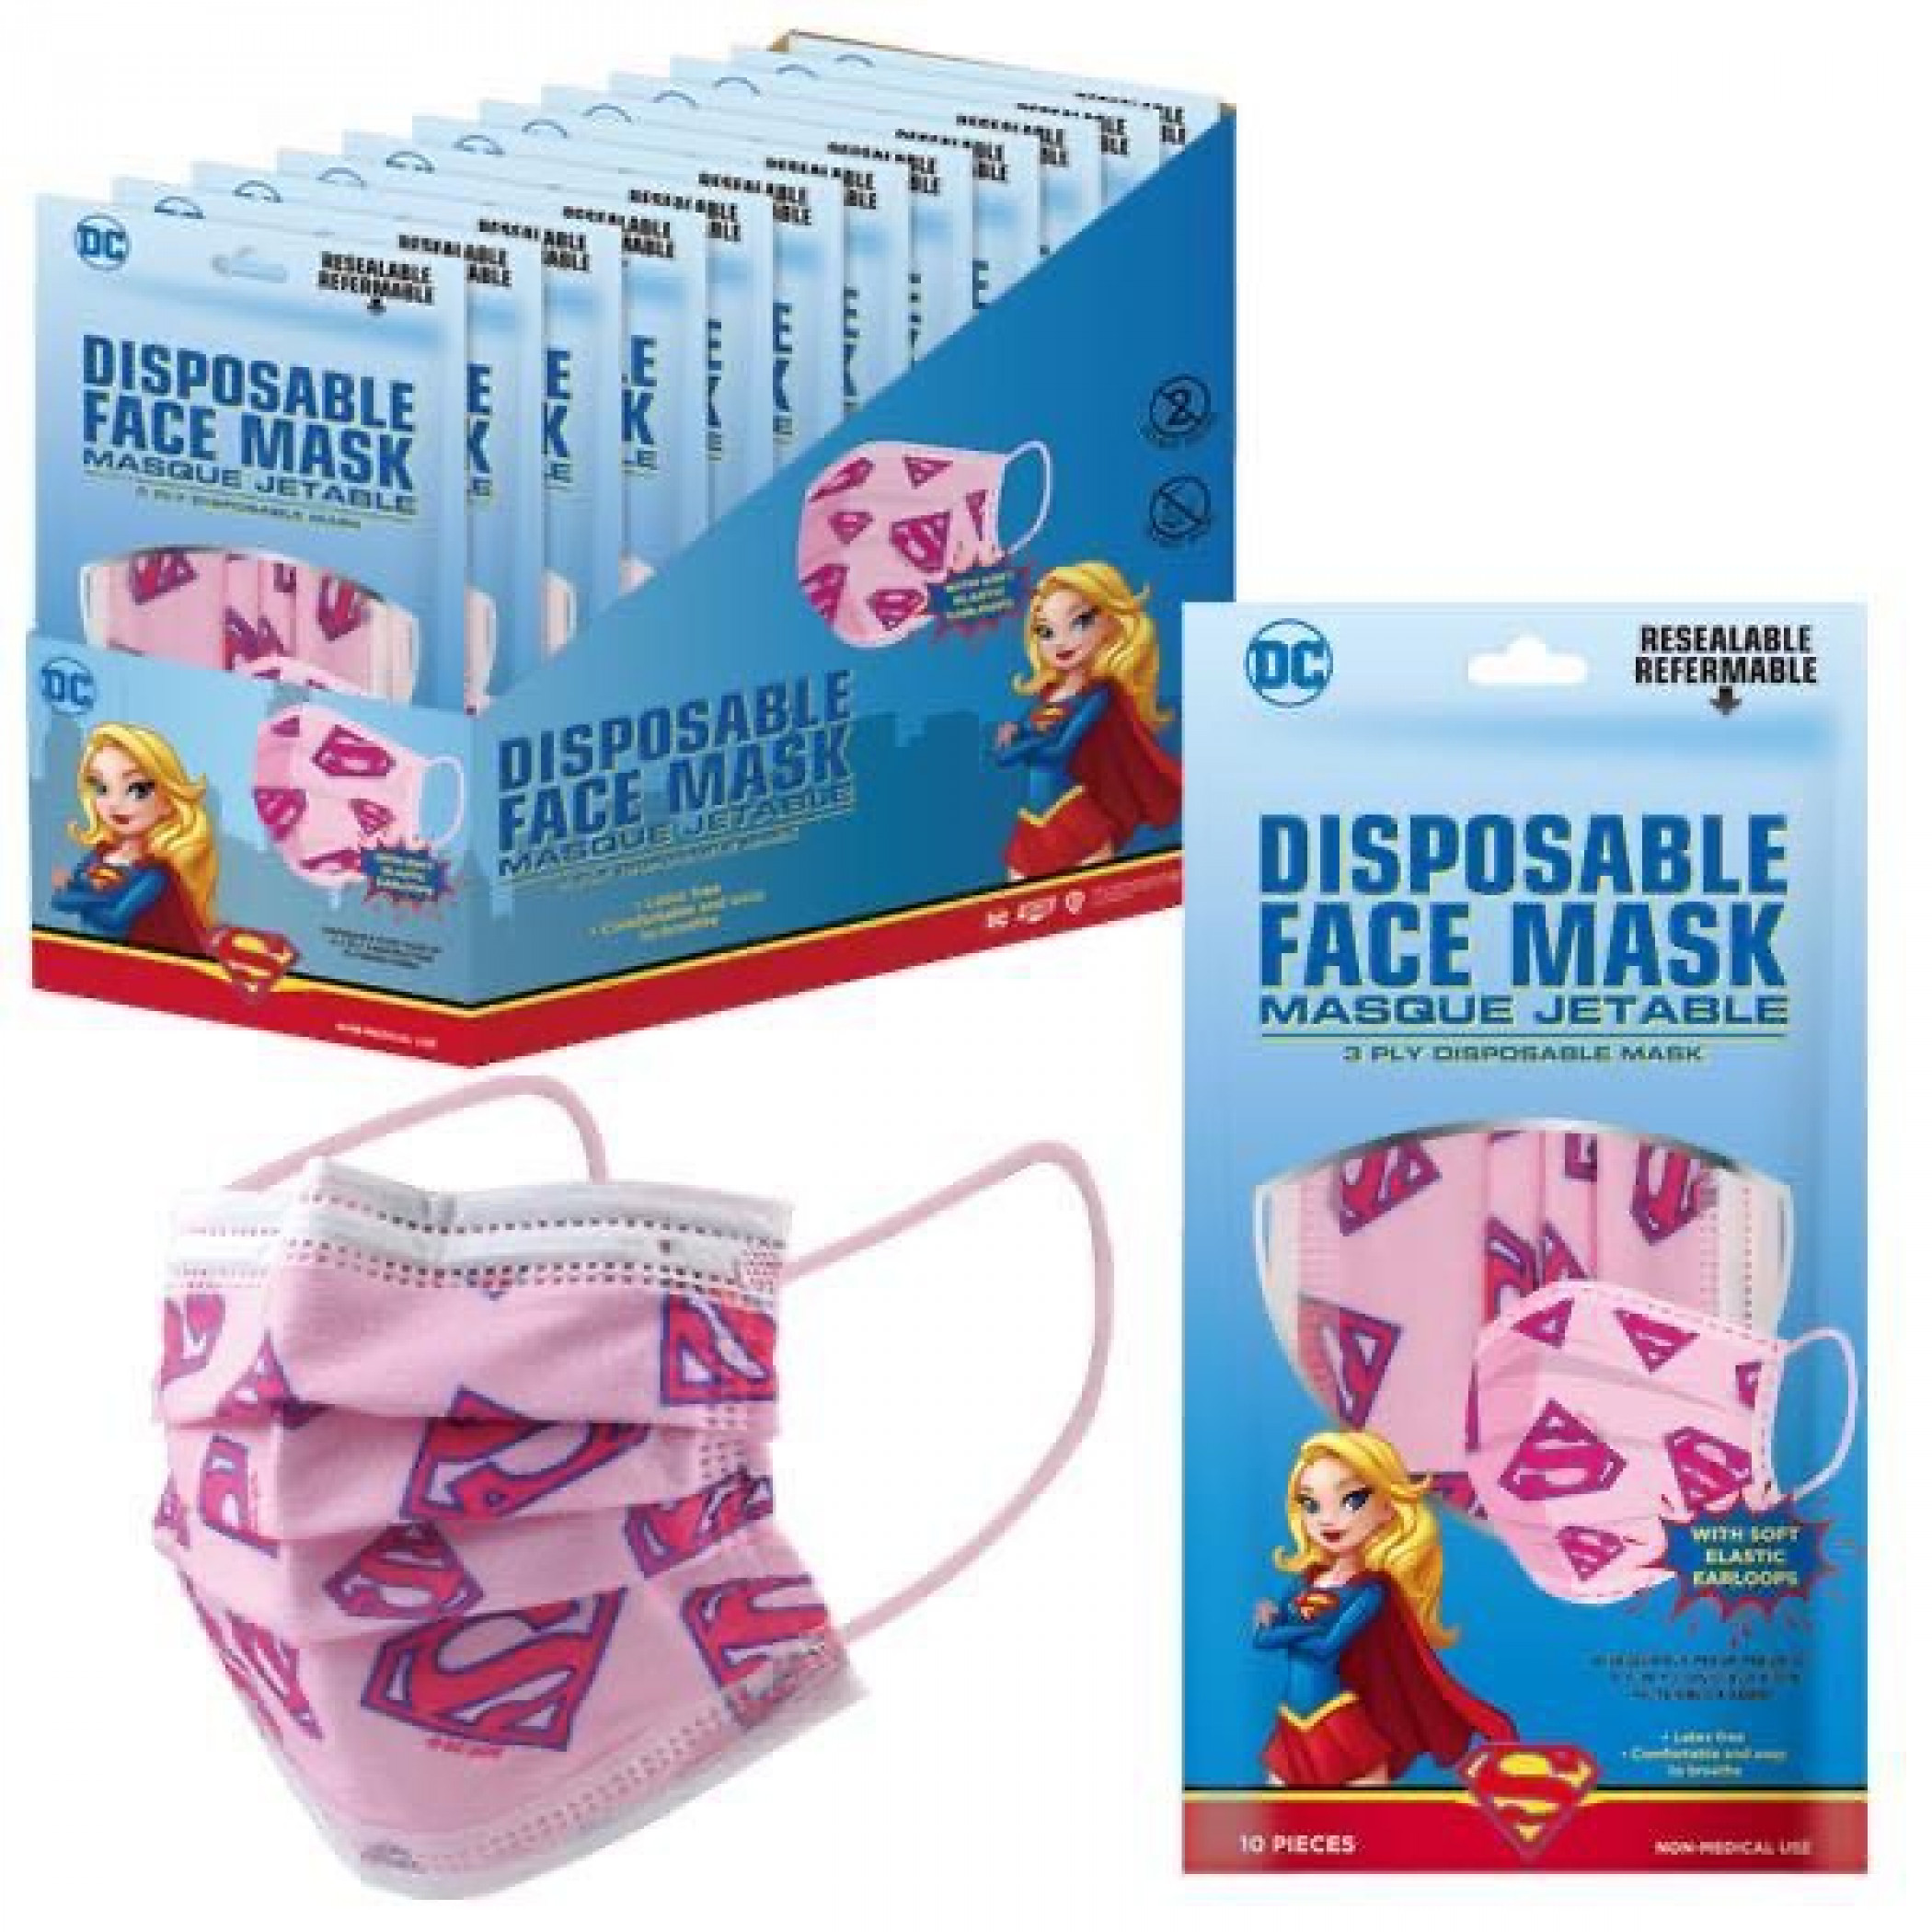 Supergirl Symbol All Over 10-Pack of Disposable Youth Face Masks